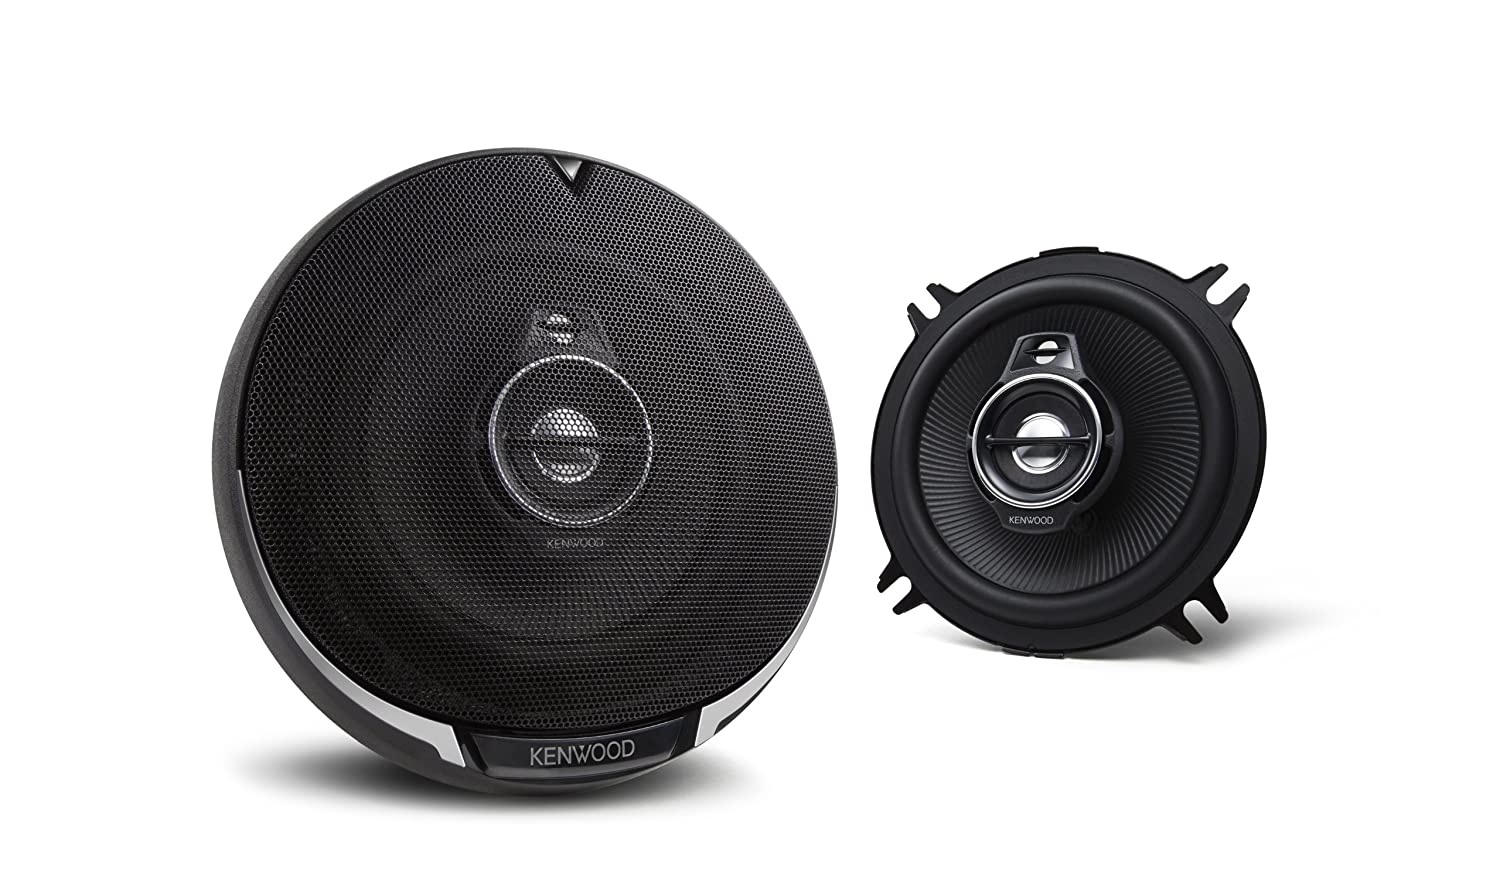 Kenwood KFC-PS1395 - Sistema de altavoces (3 ví as, 13 cm woofer de cono de papel) negro